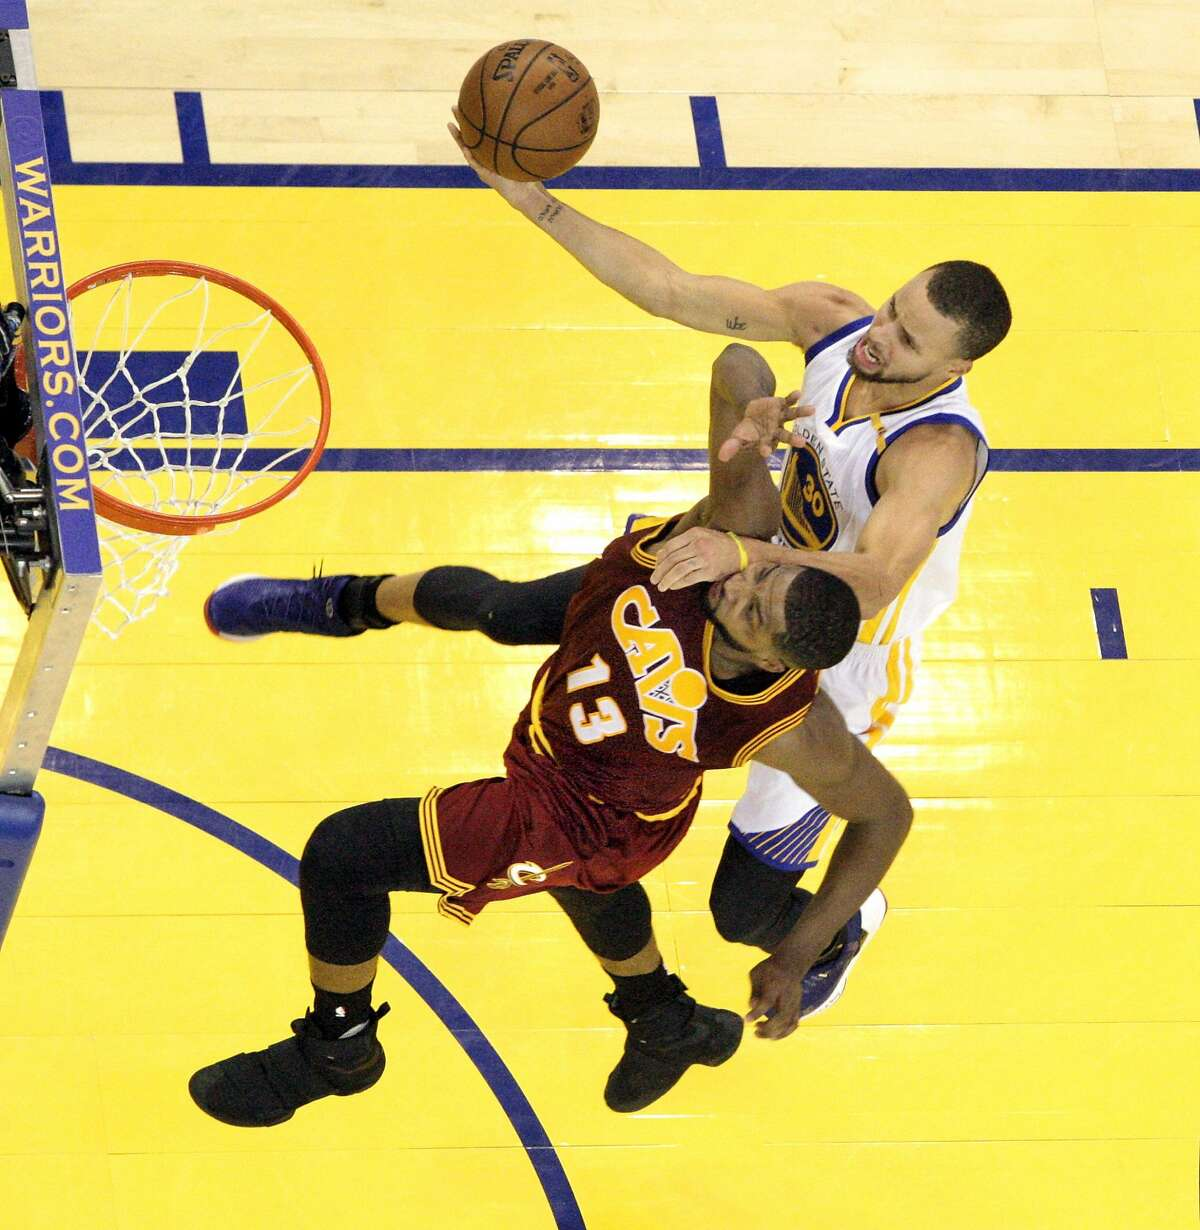 Stephen Curry (30) drives to the basket defended by Tristan Thompson (13) in the first half as the Golden State Warriors played the Cleveland Cavaliers at Oracle Arena in Oakland, Calif., on Monday, January 16, 2017.